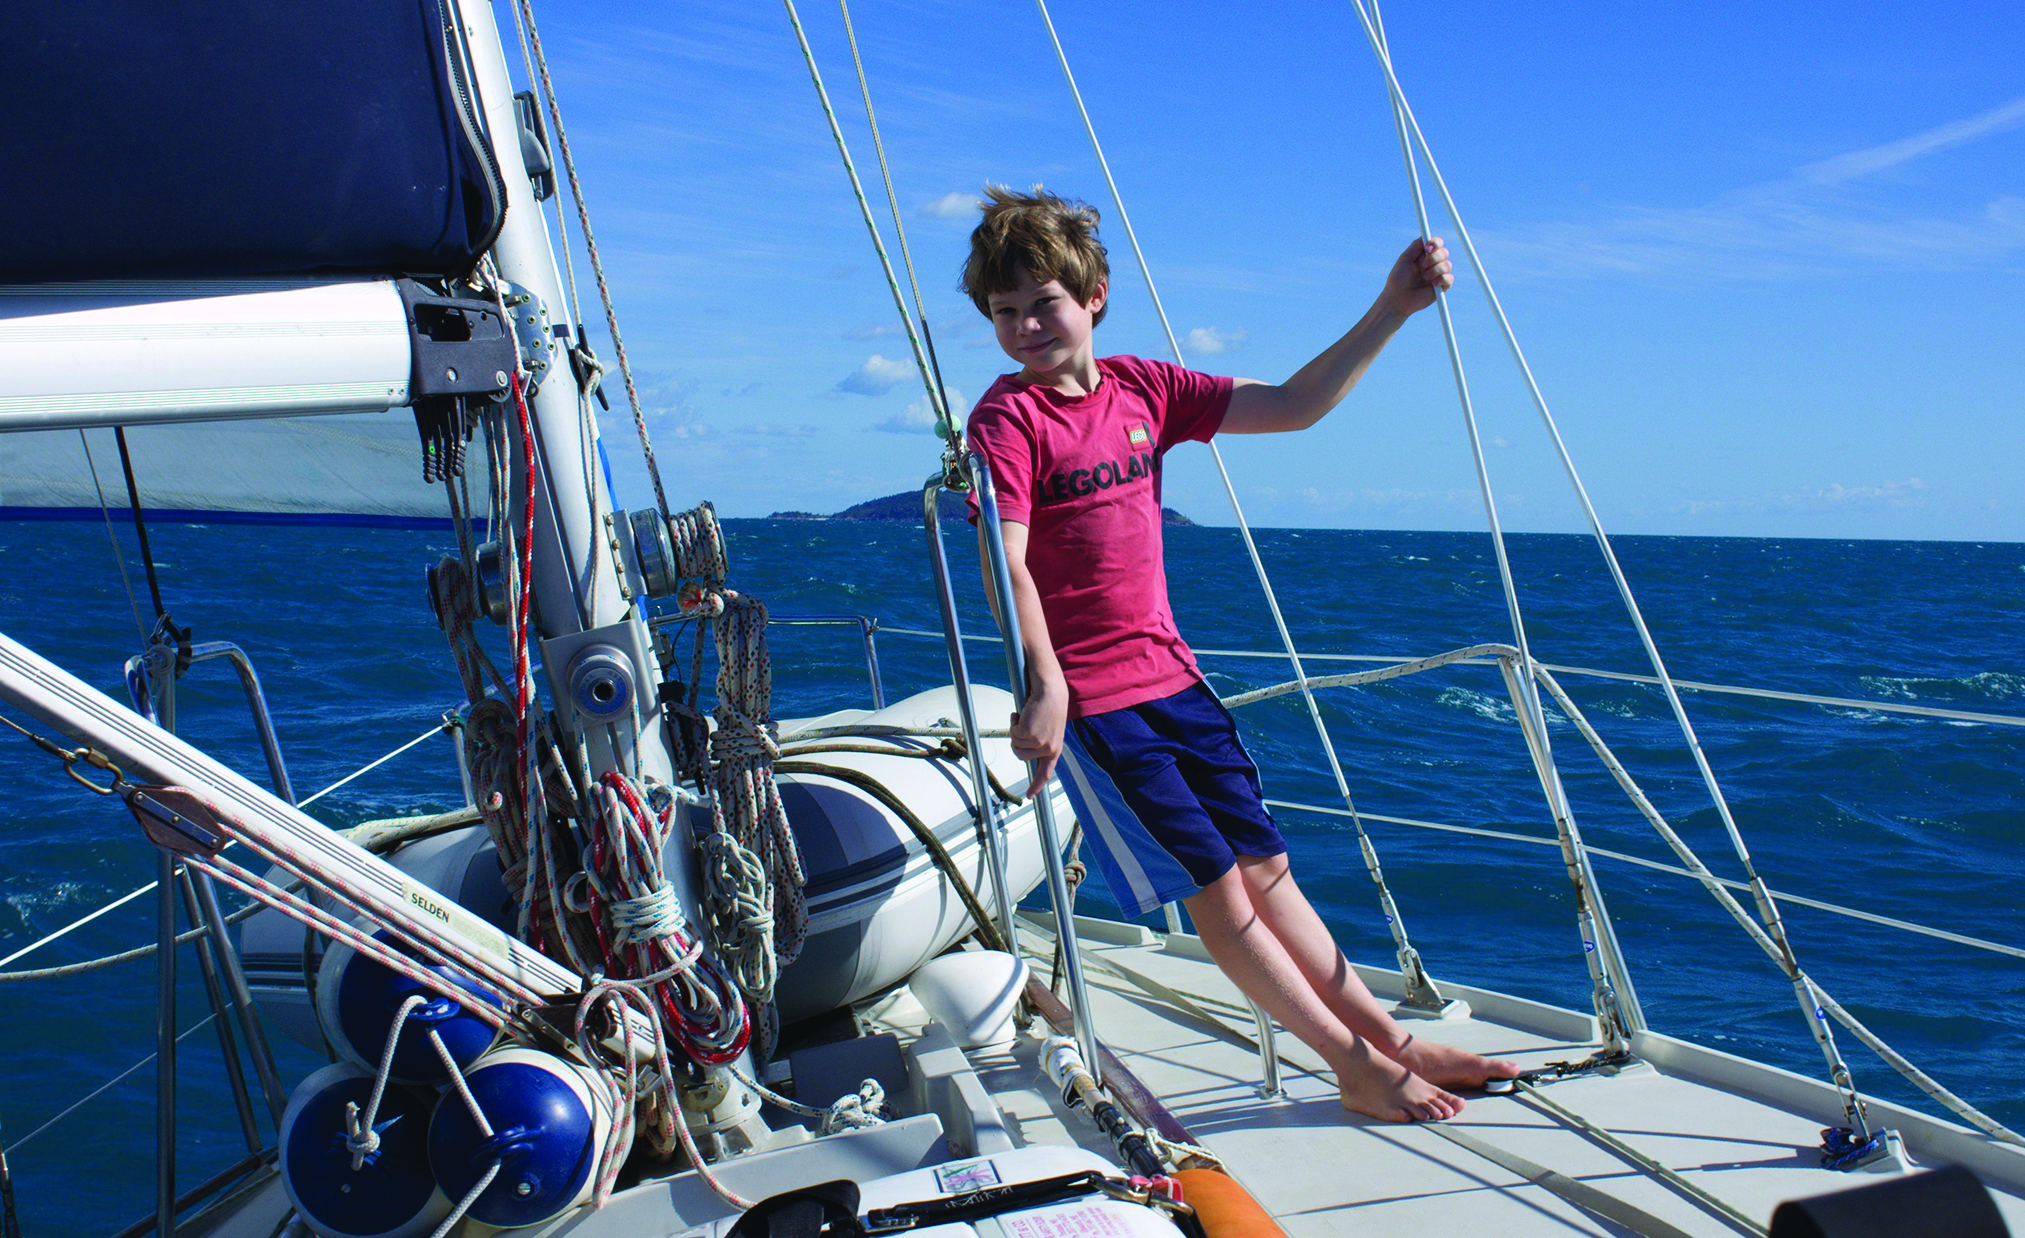 Savoring every moment of the quiet sailing life